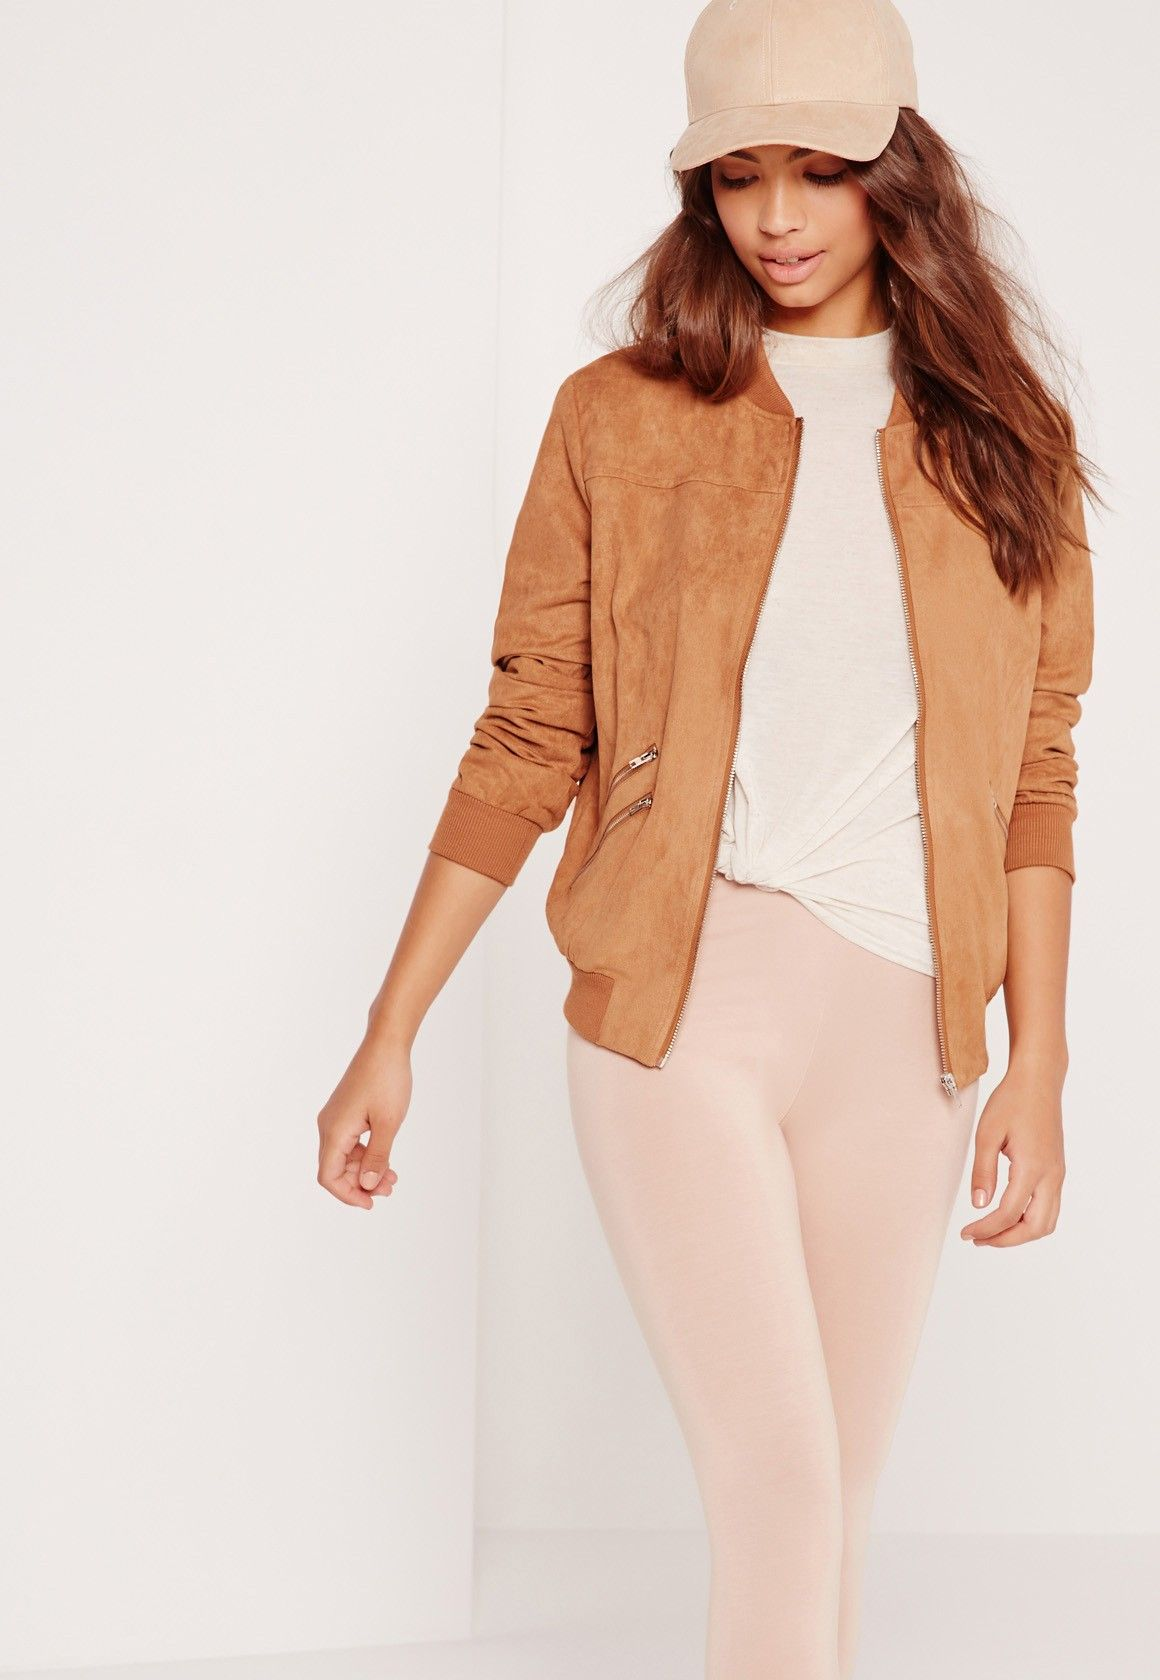 Missguided Faux Suede Zipped Bomber Jacket Tan Bomber Jacket Outfit White Skinny Pants Suede Bomber Jacket [ 1680 x 1160 Pixel ]